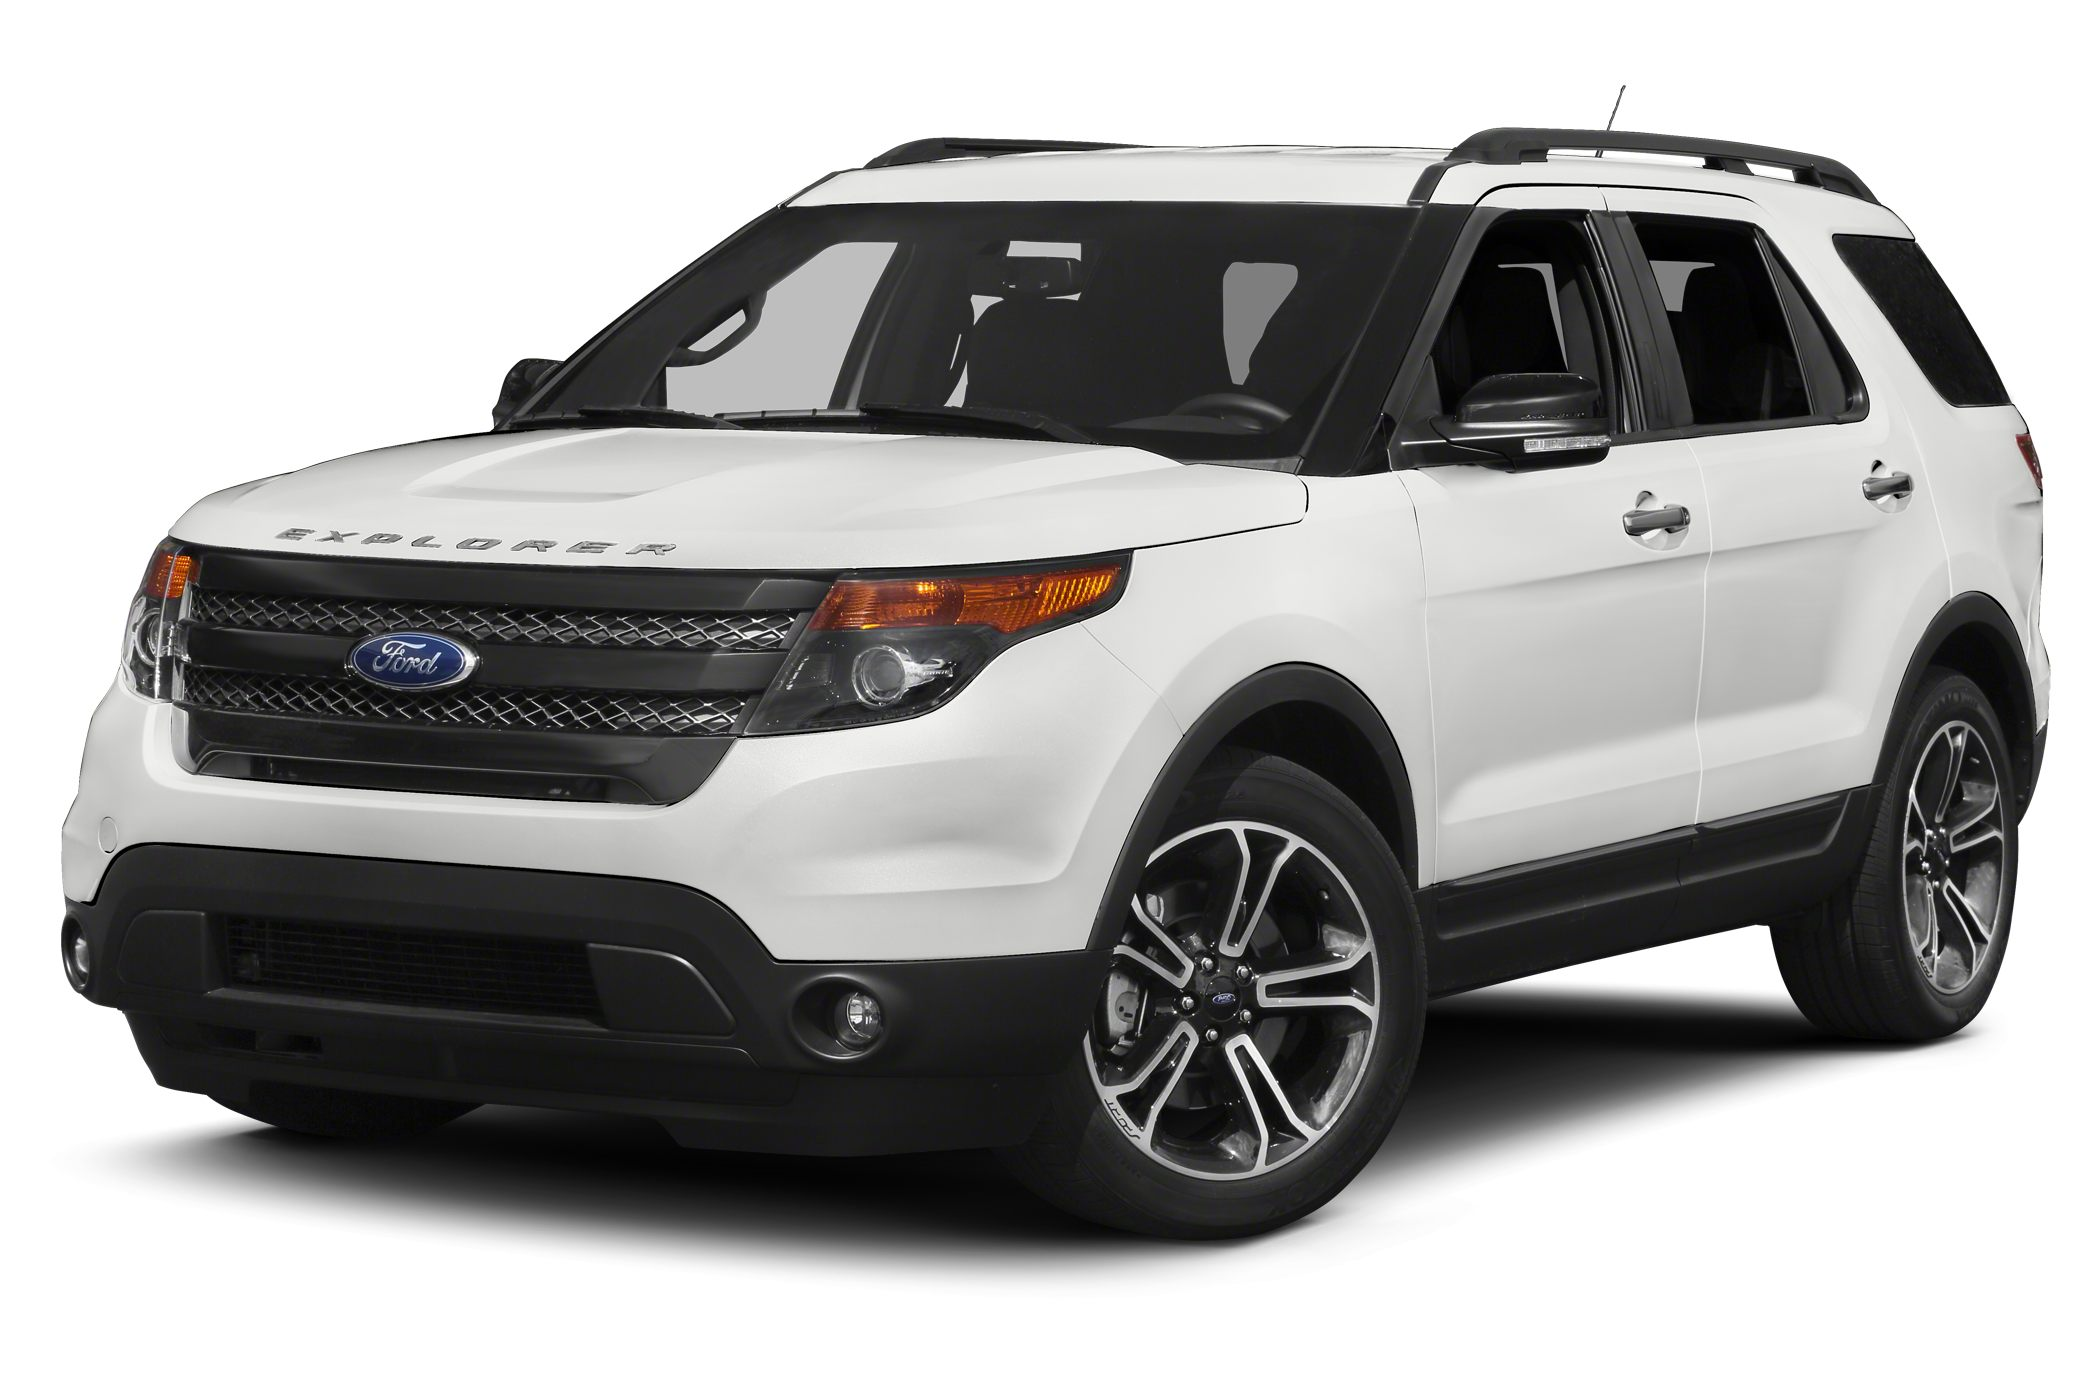 Ford Explorer Sport For Sale >> 2014 Ford Explorer Sport 4dr 4x4 Pricing And Options